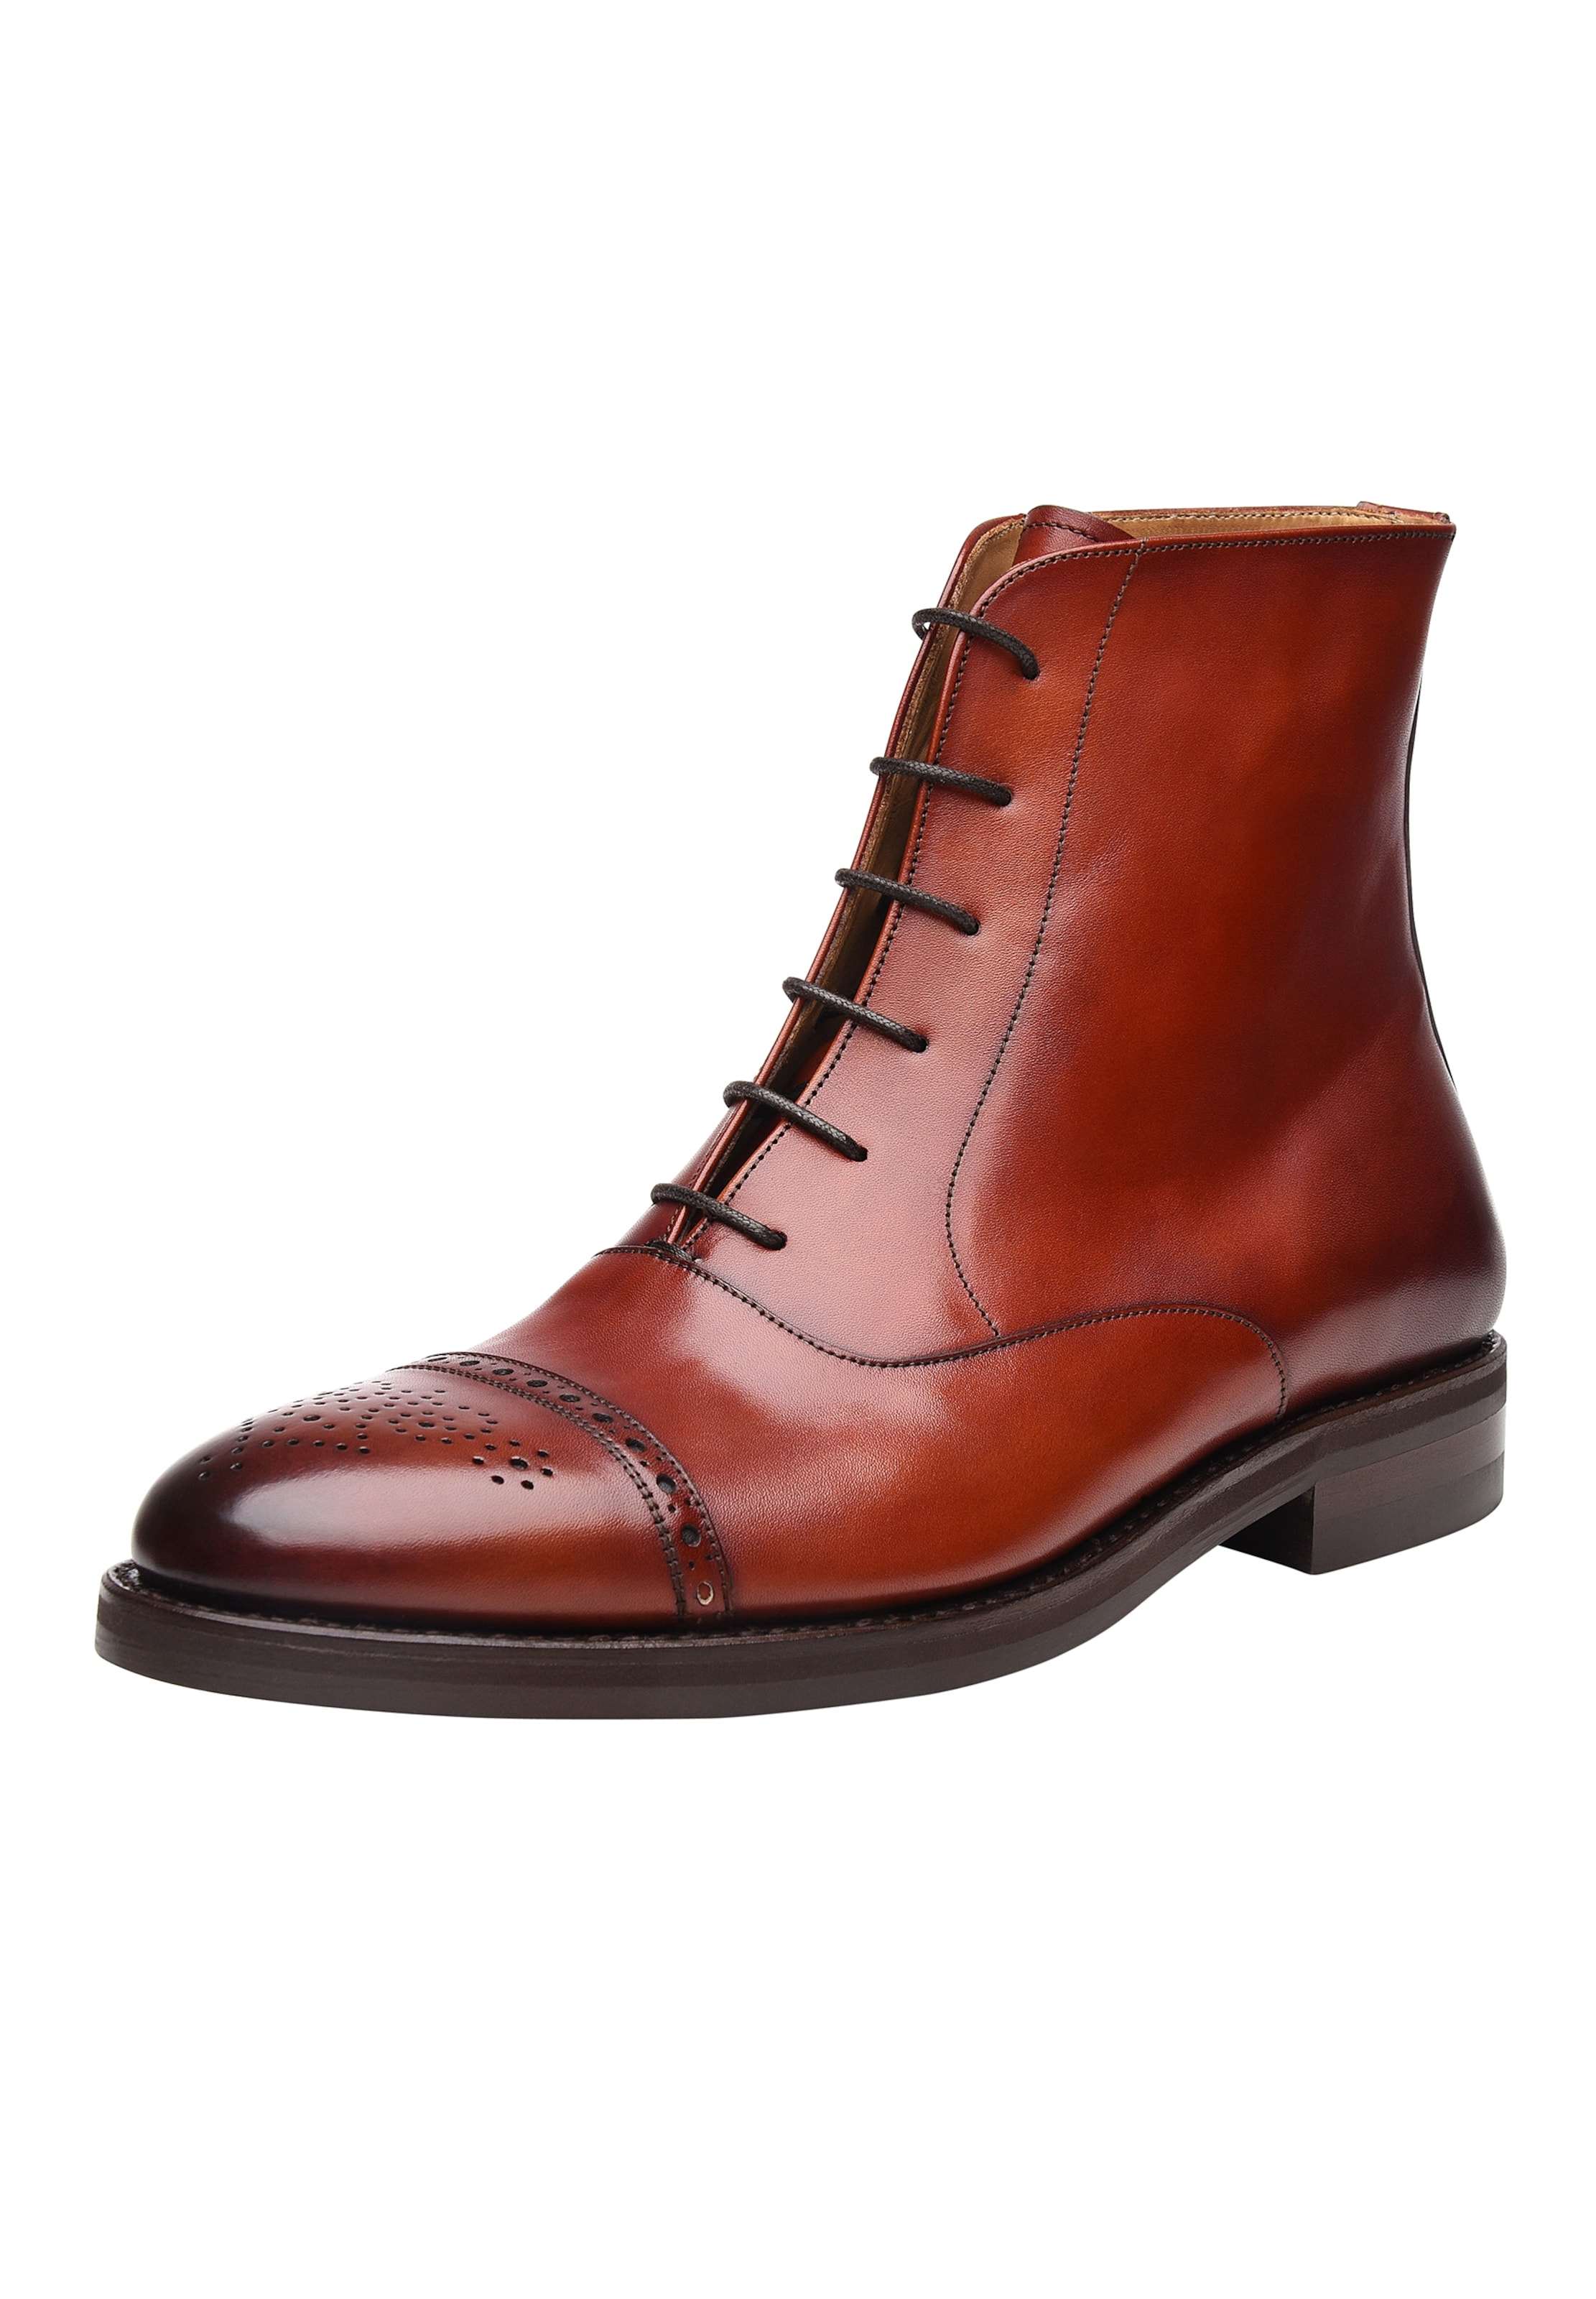 Boots Boots In Shoepassion 'no6714' Braun Shoepassion In 'no6714' PXkiuOZT